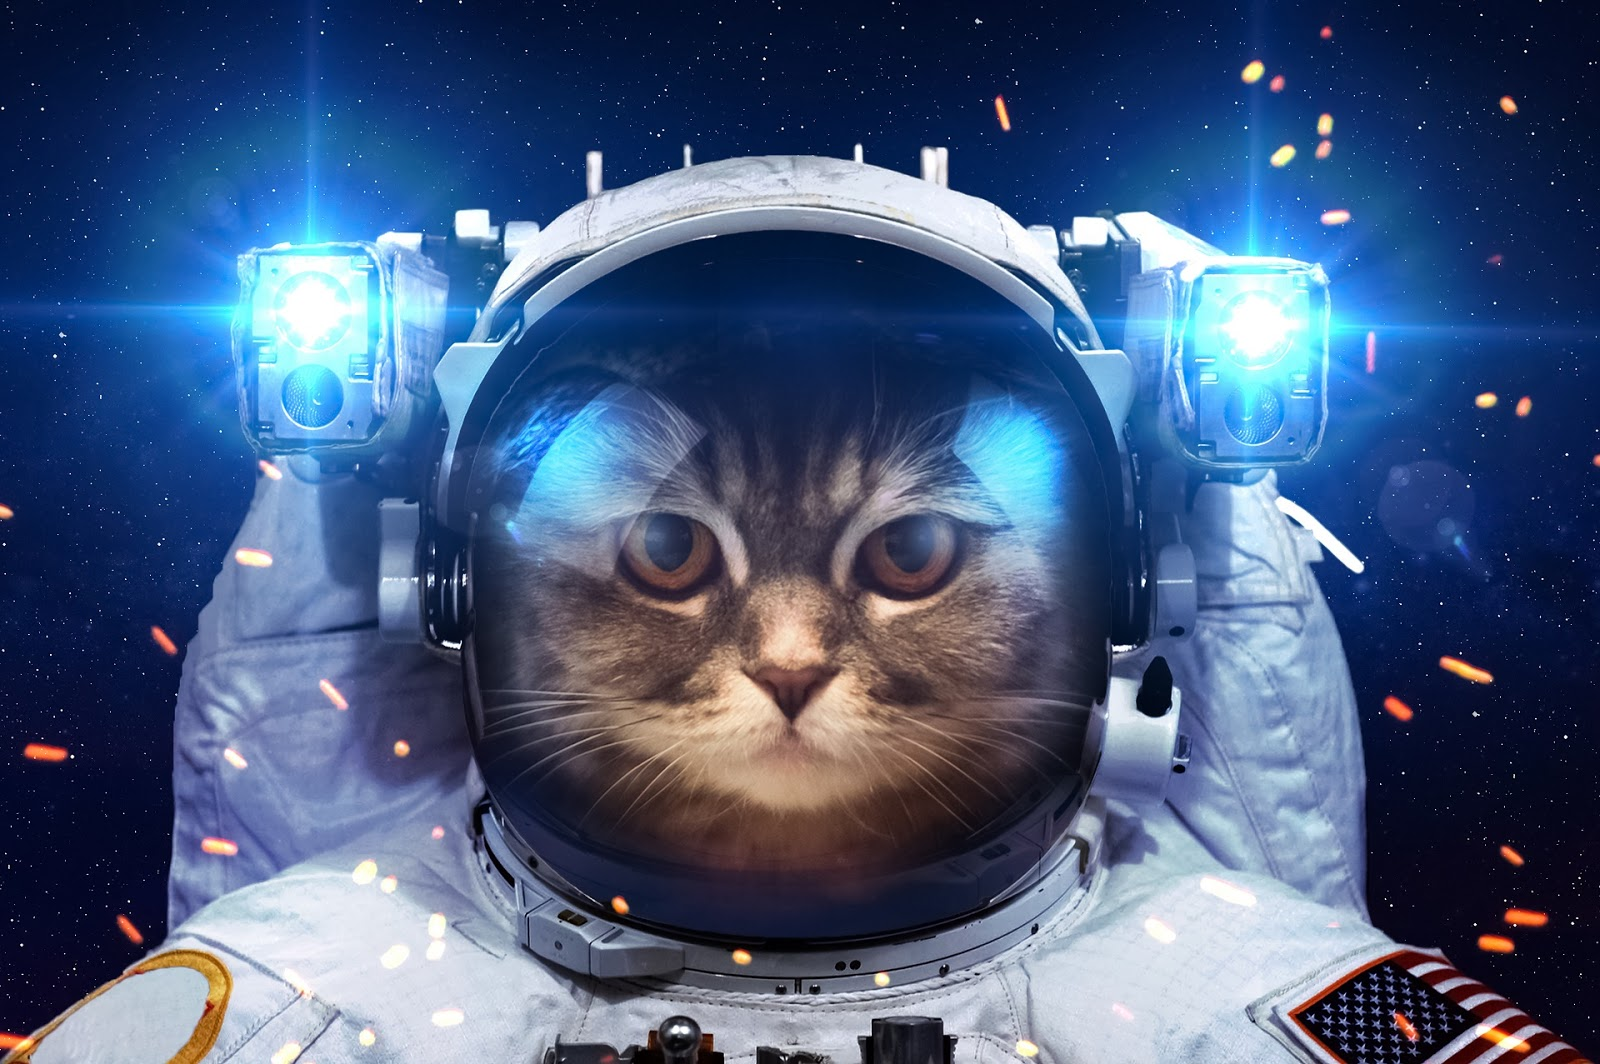 funny cat dressed up in astronaut space suit image HD wallpaperjpg 1600x1064